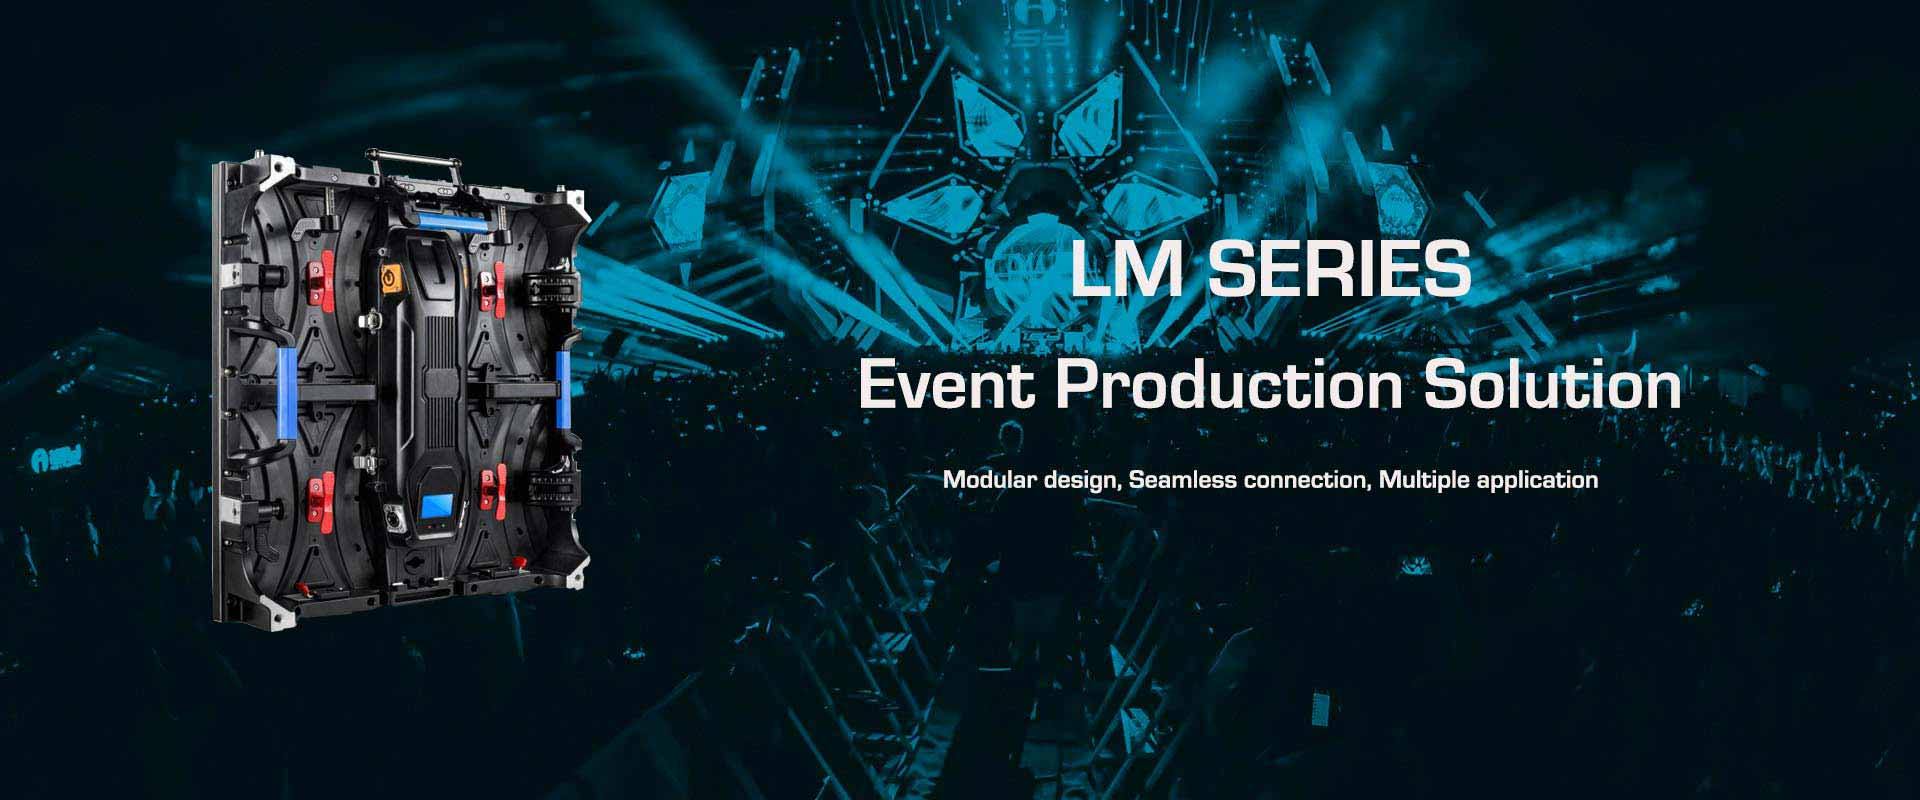 lm-series